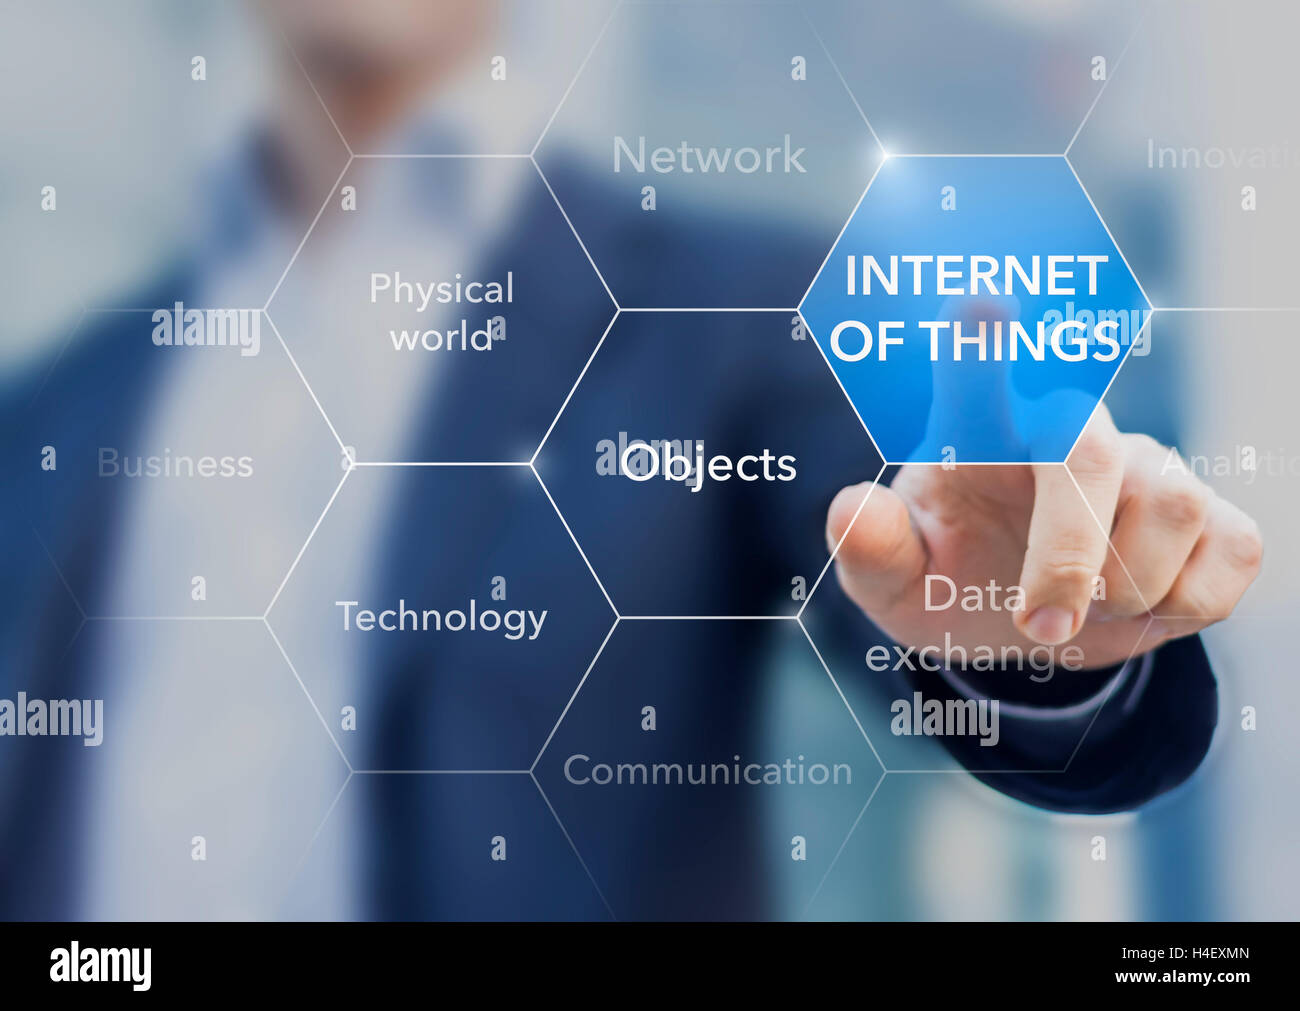 Consultant presentation about internet of things and connected objects - Stock Image